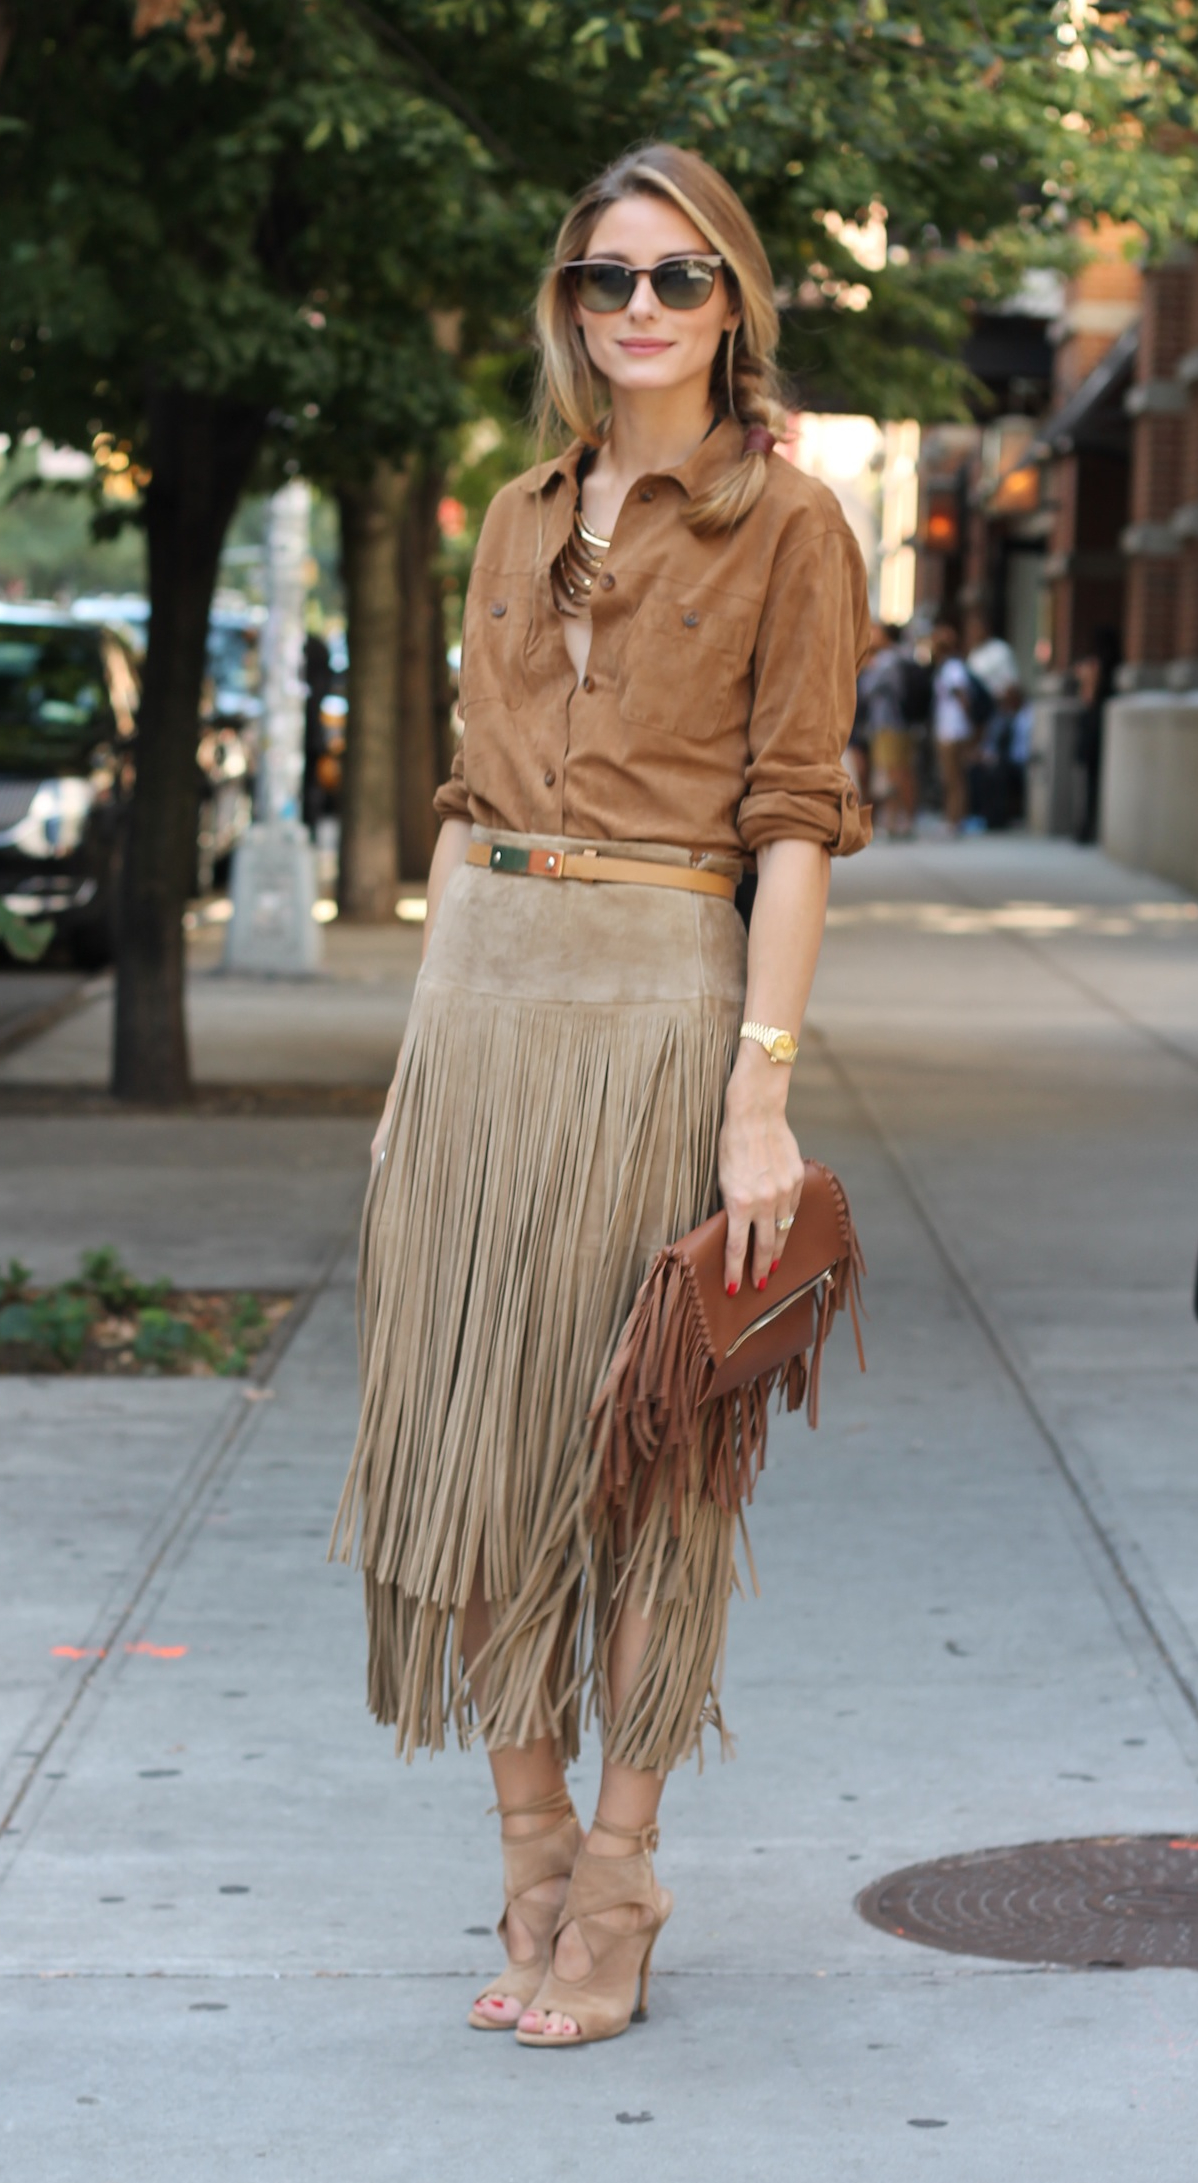 How To Wear The Fringe Fashion Trend - Outfits - Just The Design